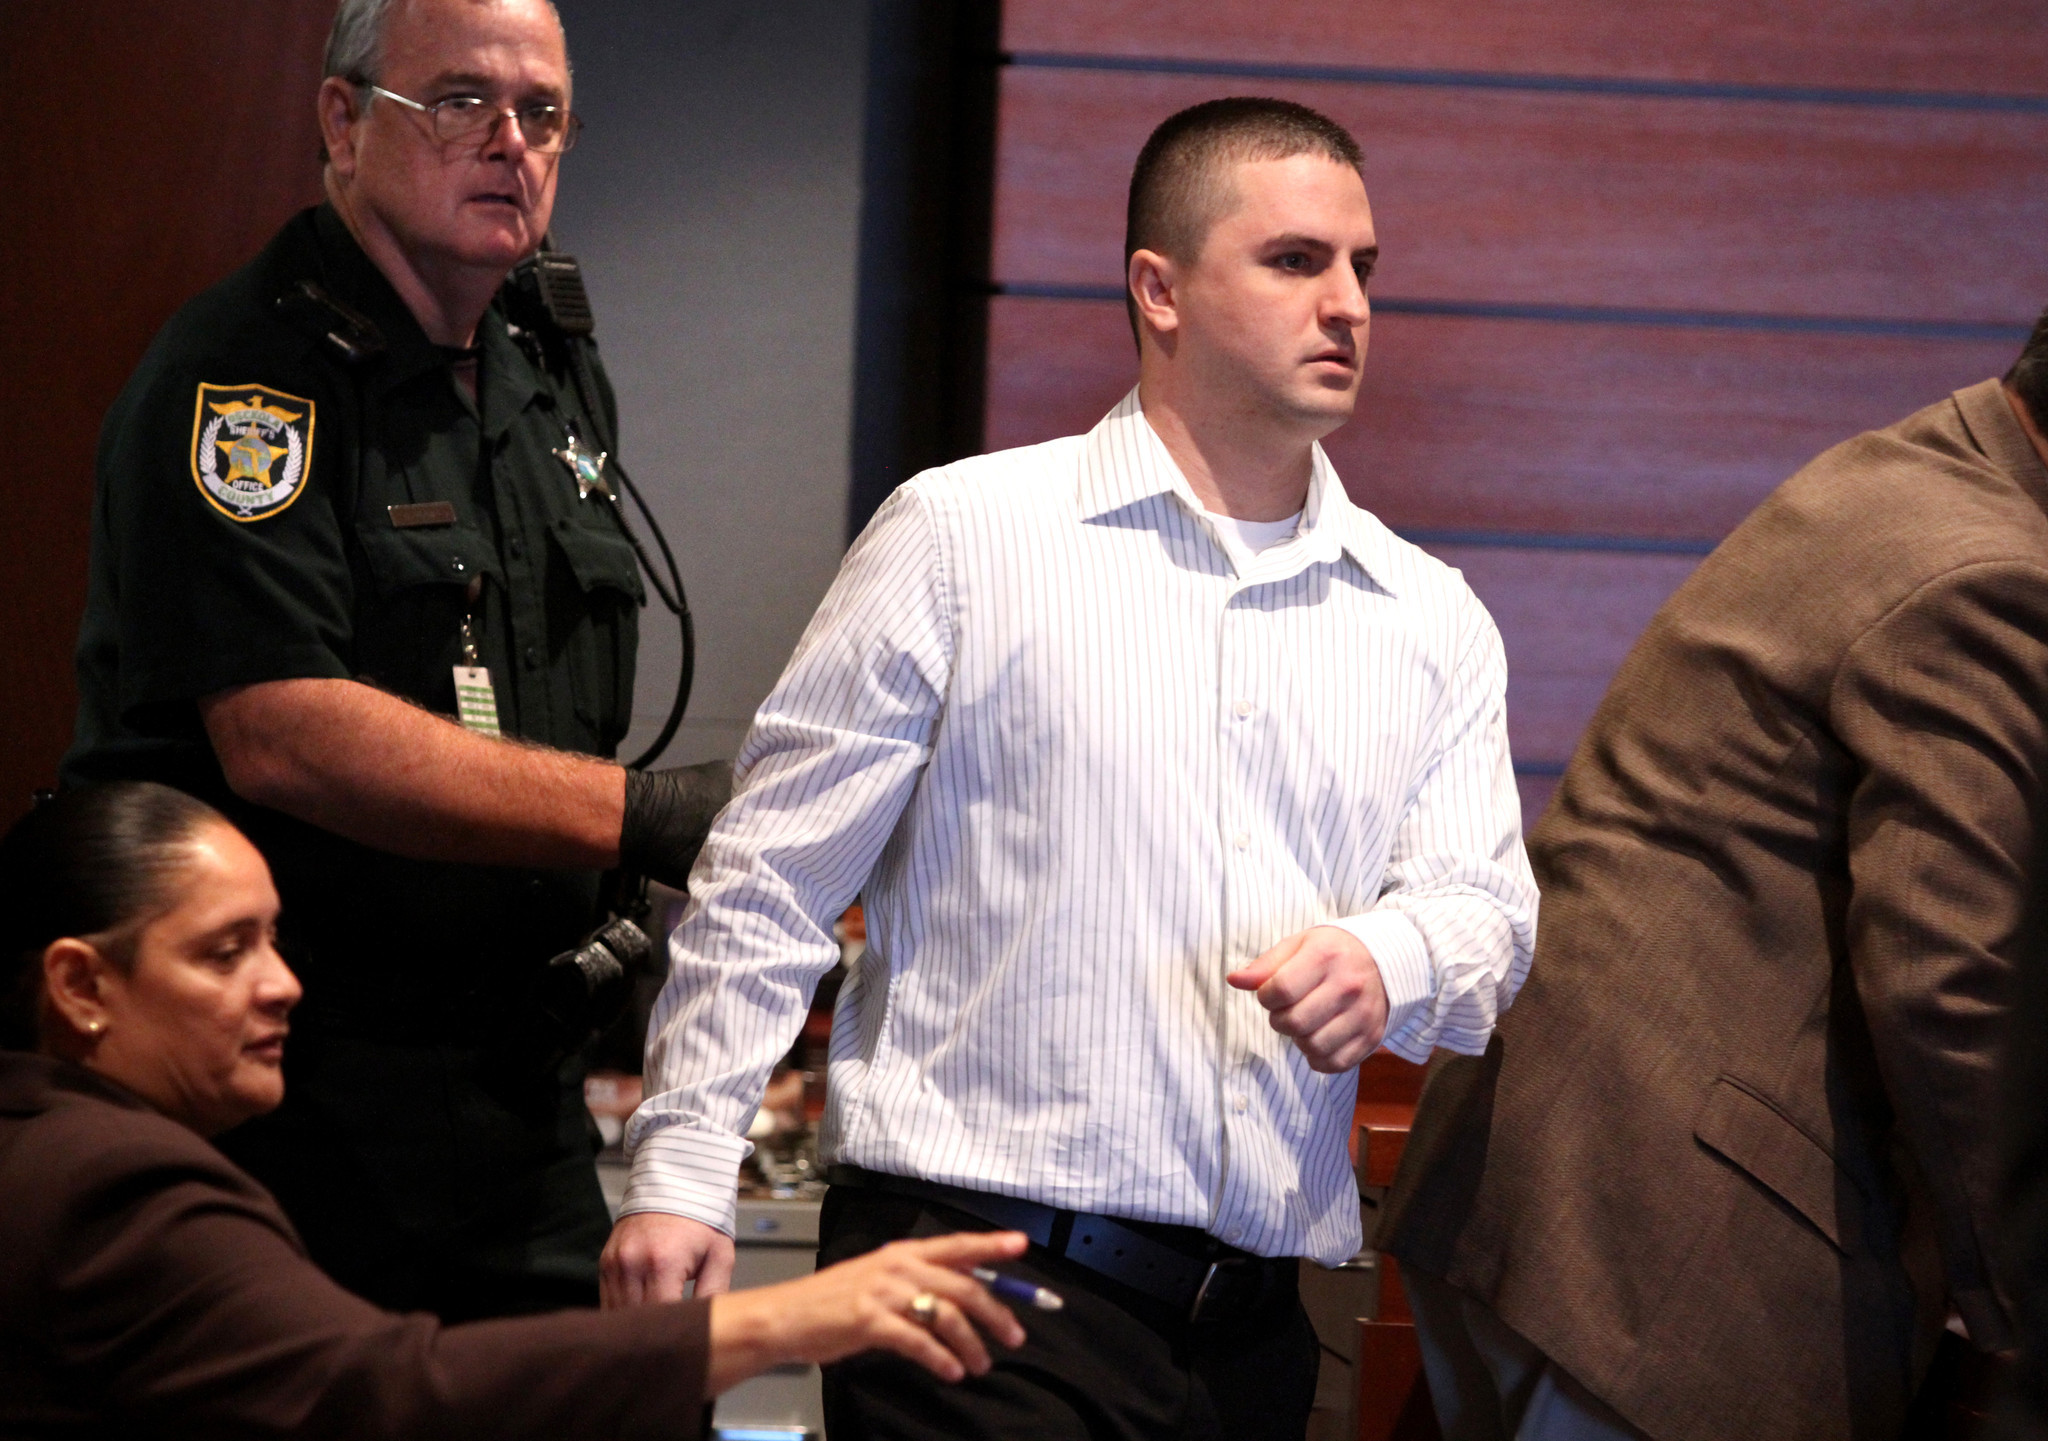 Accused gunman Jason Clair arrives in court for the first day of his trial, at the Osceola County courthouse in Kissimmee, Monday, October 22, 2012. Clair is charged with two counts of first-degree murder in the fatal shooting of brothers Joel and James E. Kun Jr. outside Lenz Dug-Out Pub in June.